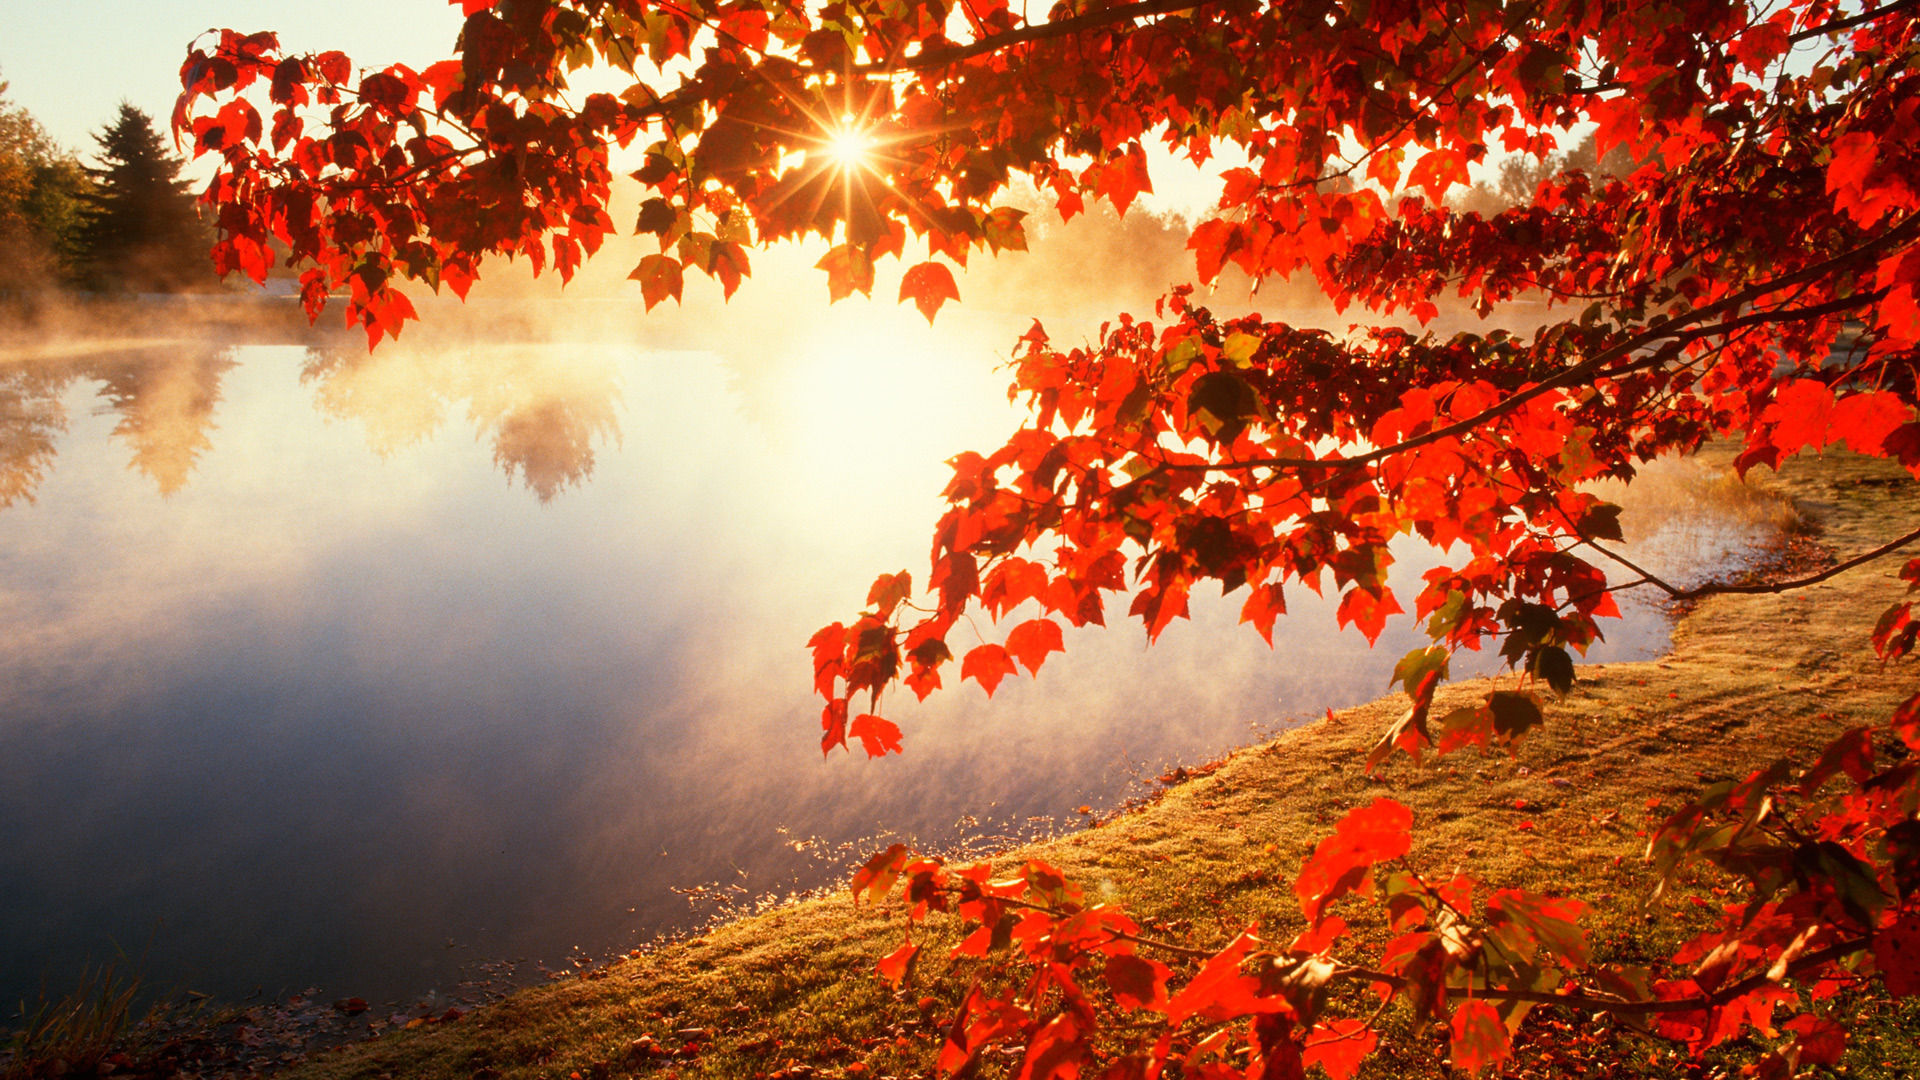 collection of autumn desktop wallpaper free on hdwallpapers 1920a—1080